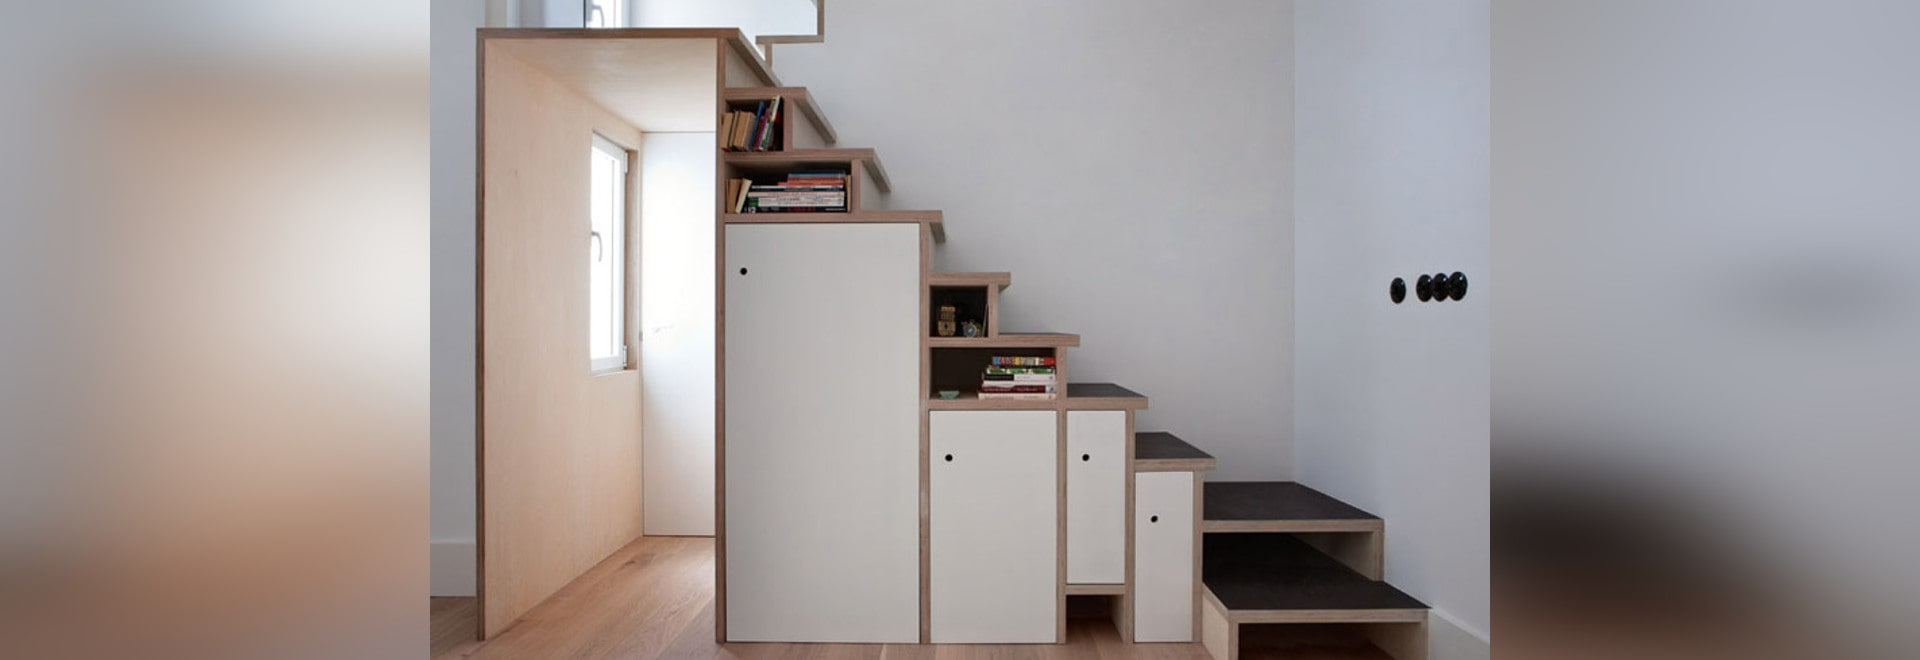 Plywood Staircase By Buj+Colón Arquitectos Integrates Shelves And Cupboards  For A Small Flat